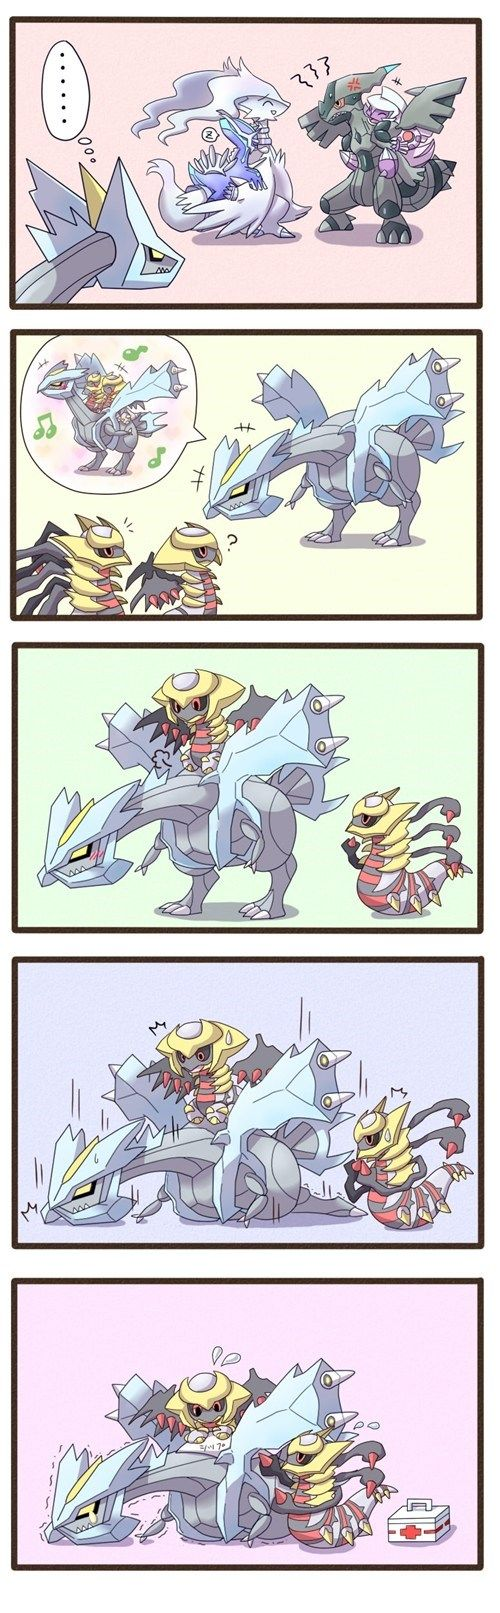 Poor Kyurem #Tao trio brothers #creation trio brothers